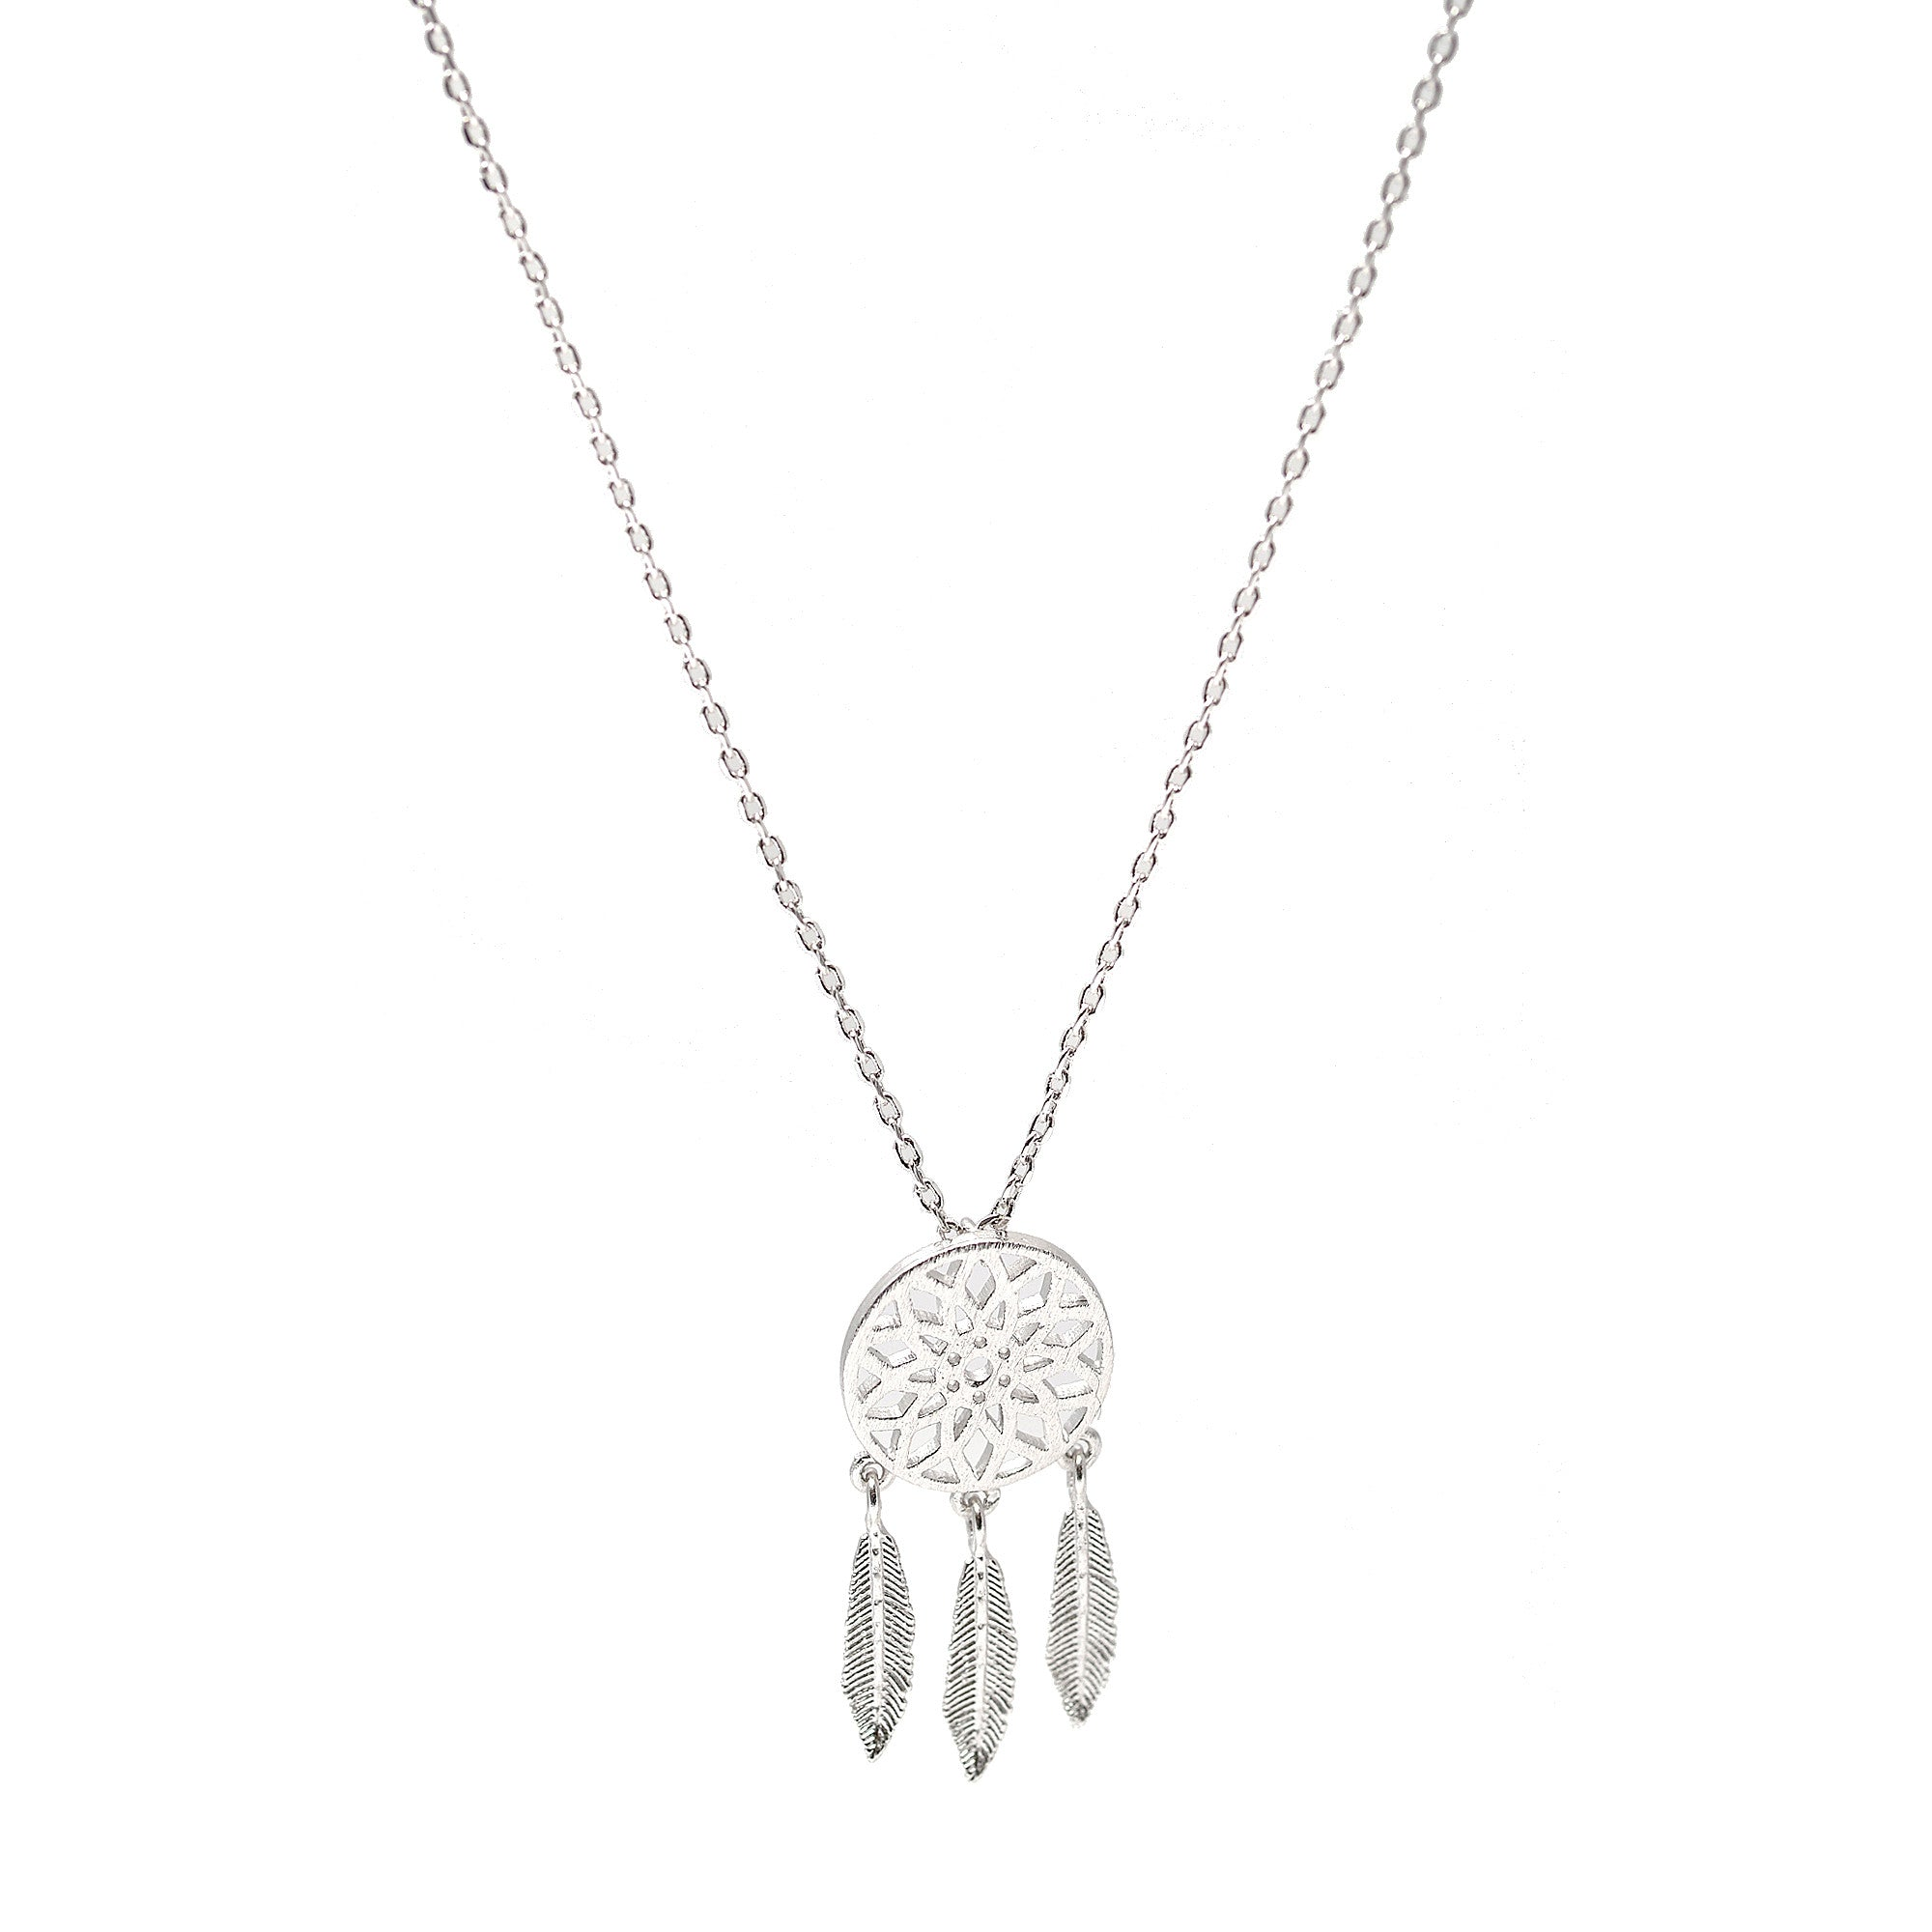 turkoise necklace dream silver sterling dreamcatcher apop inch products catcher